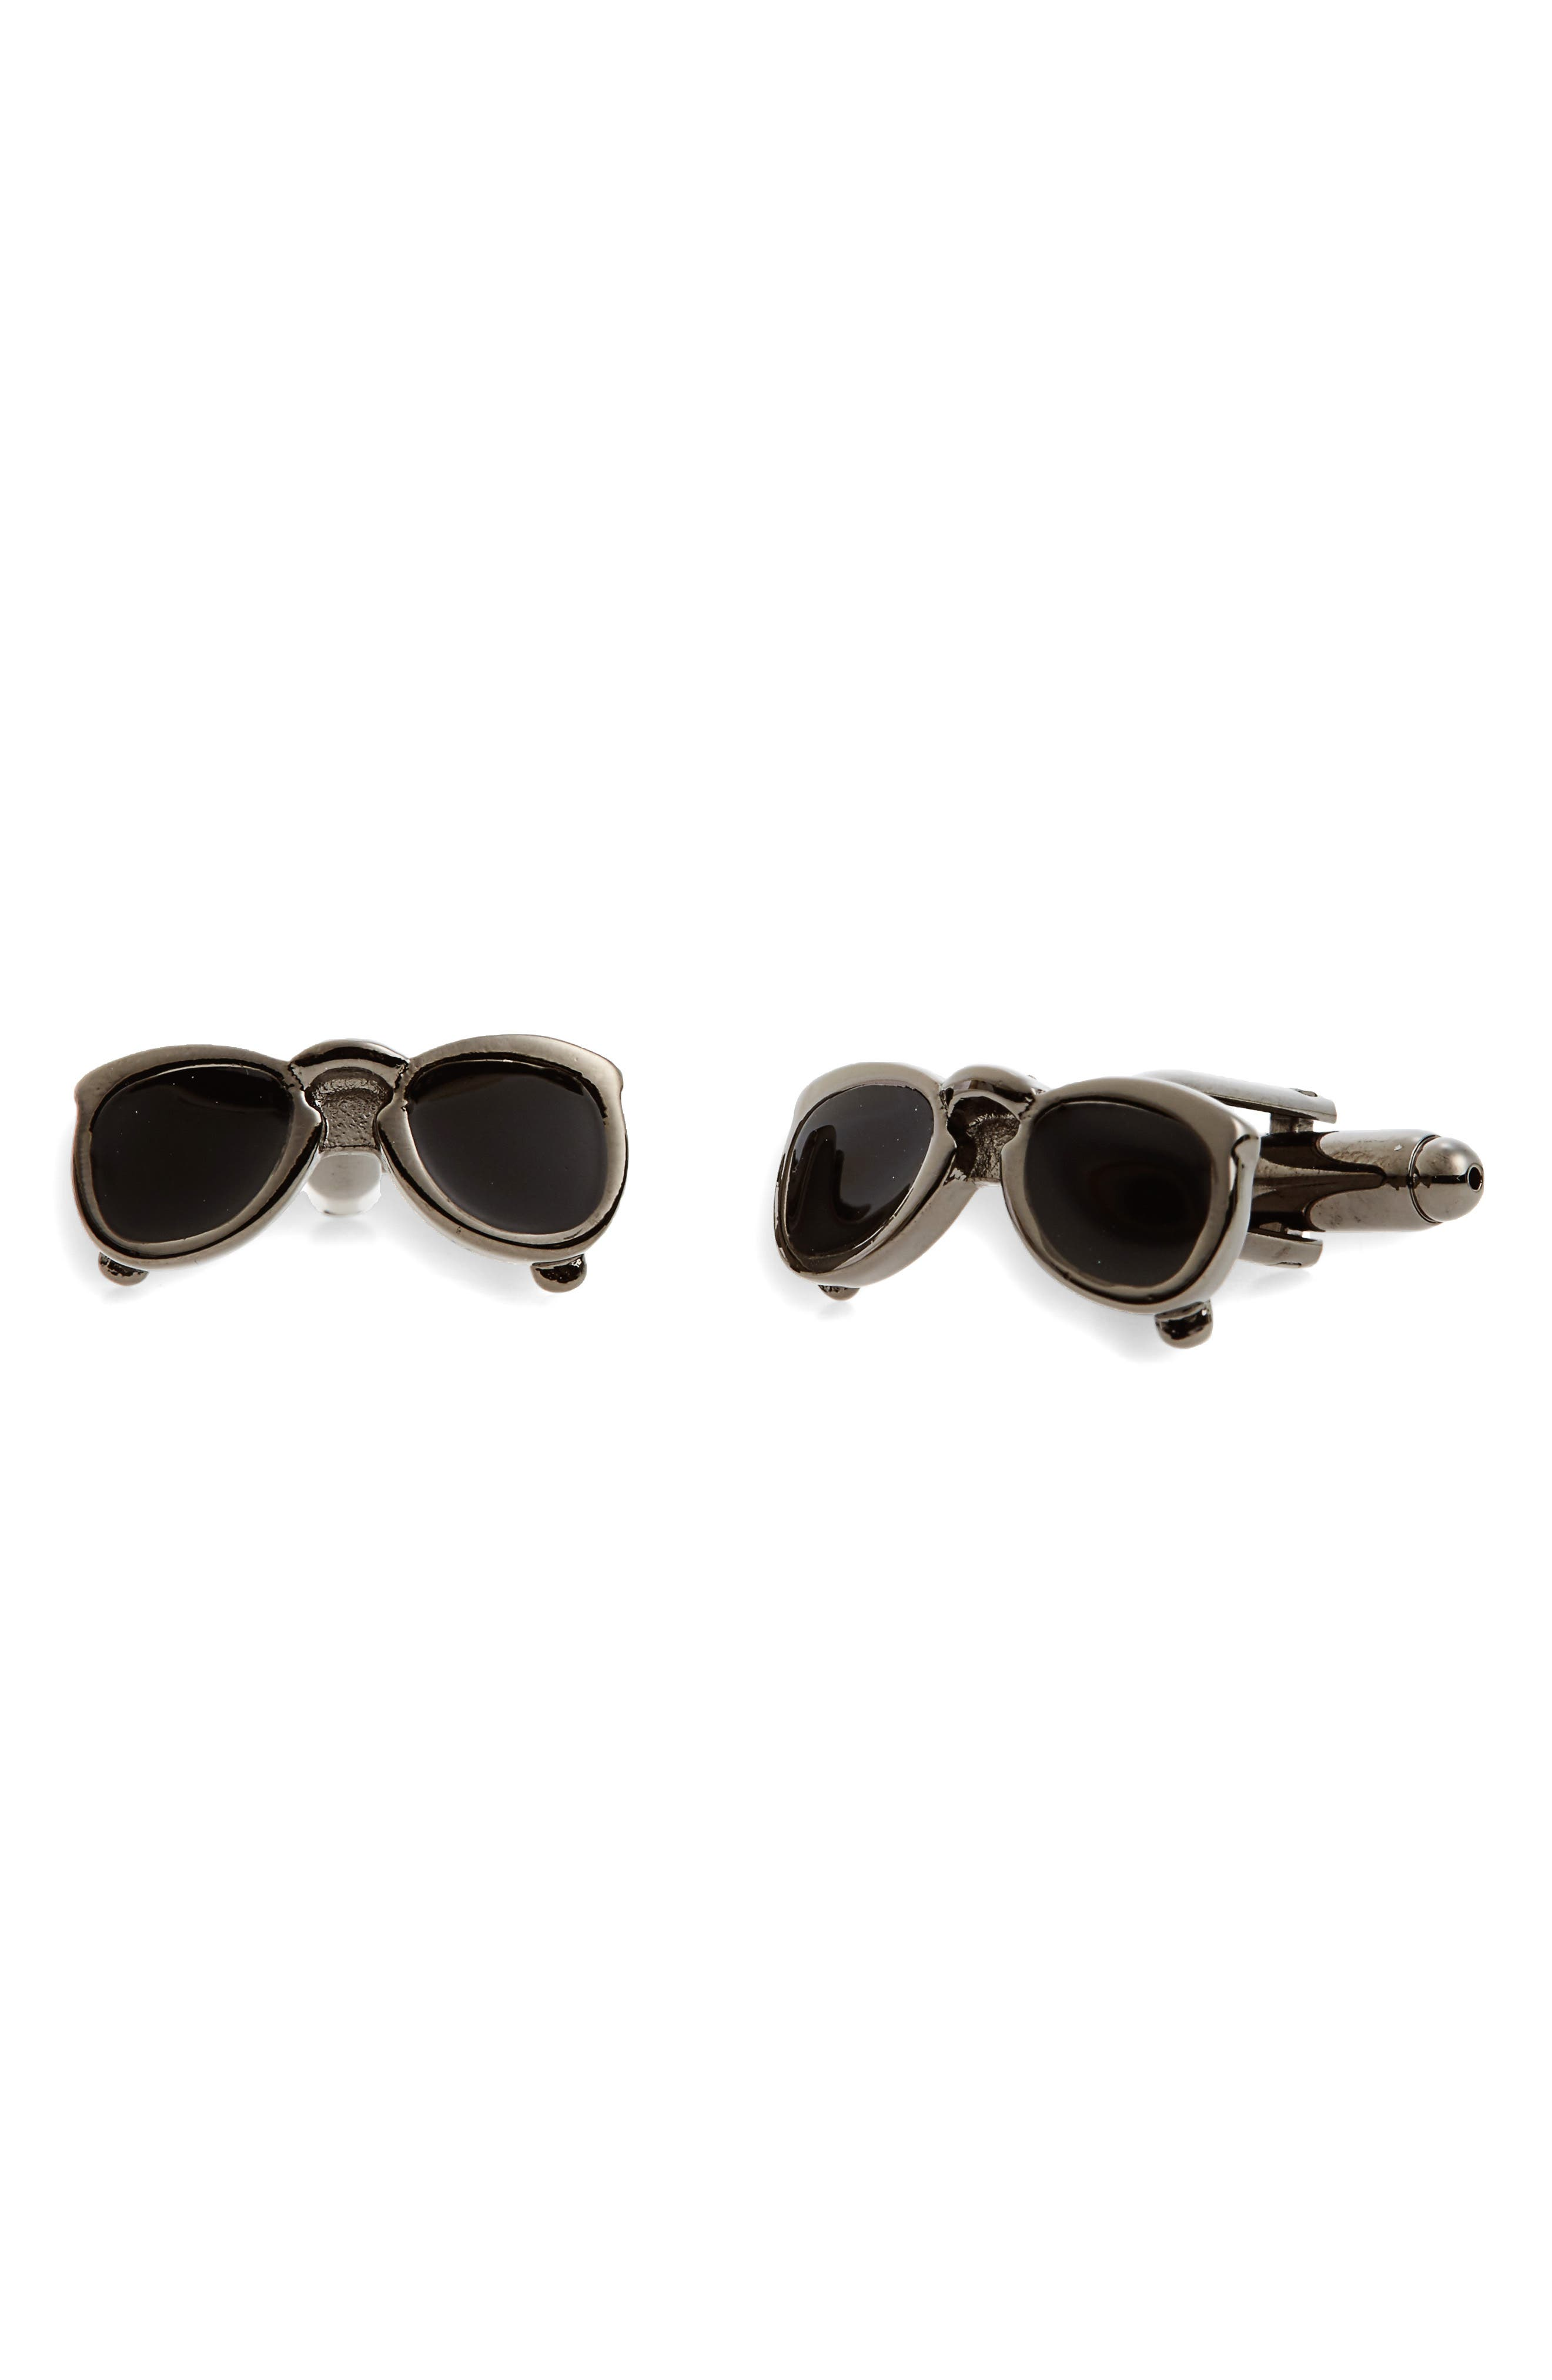 Main Image - Link Up Sunglasses Cuff Links